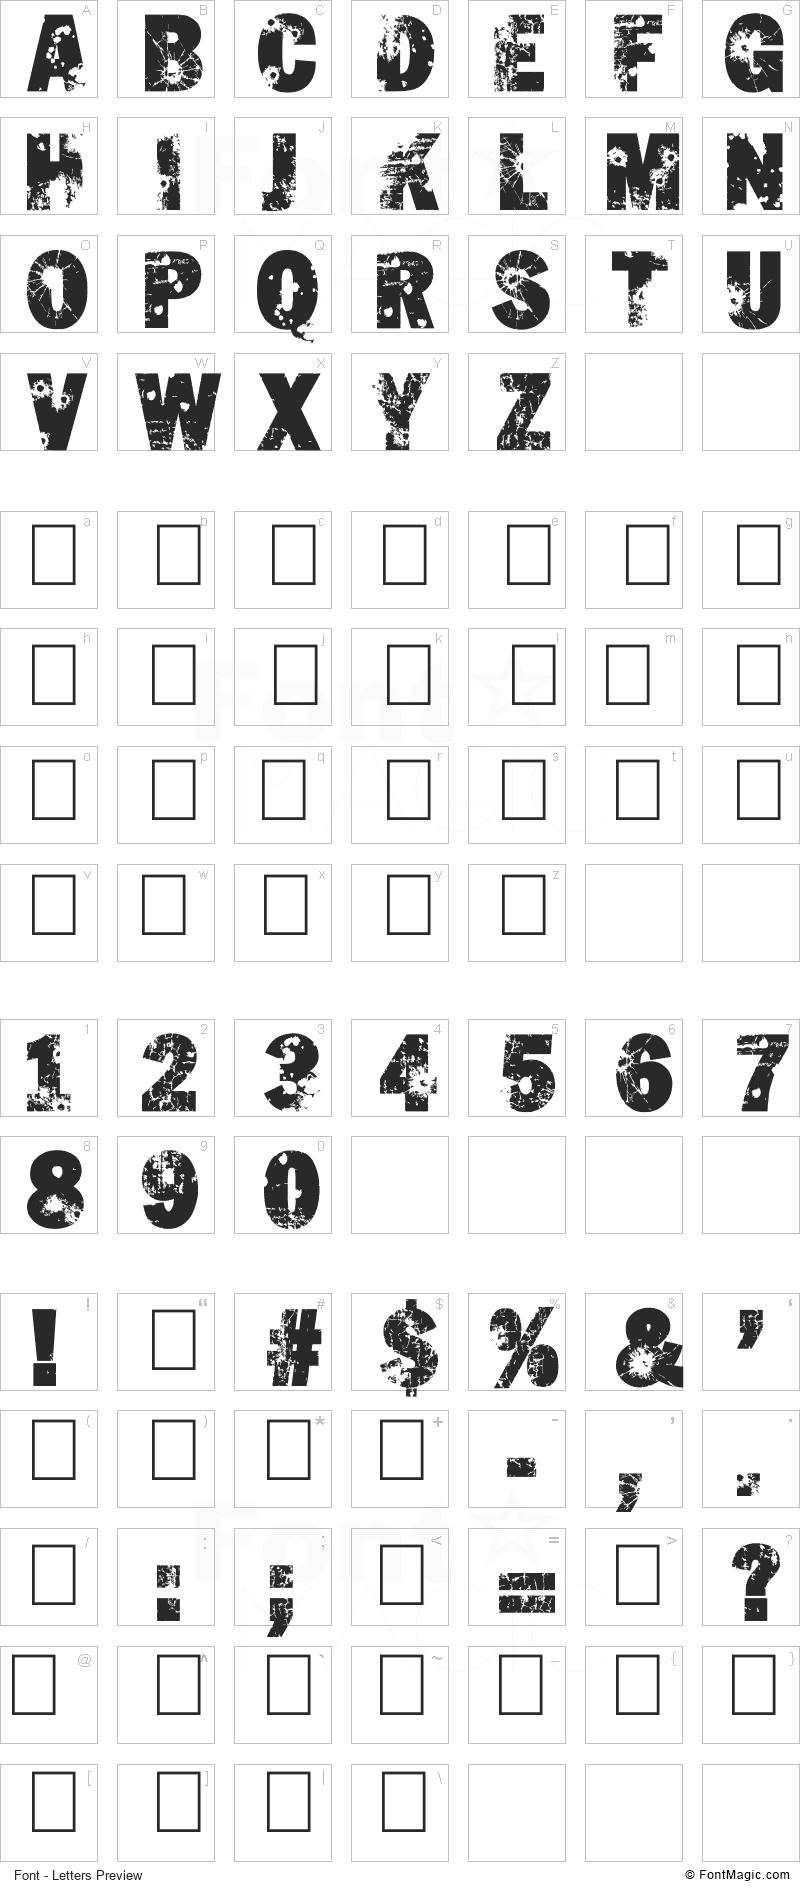 Shut'Em Down Font - All Latters Preview Chart